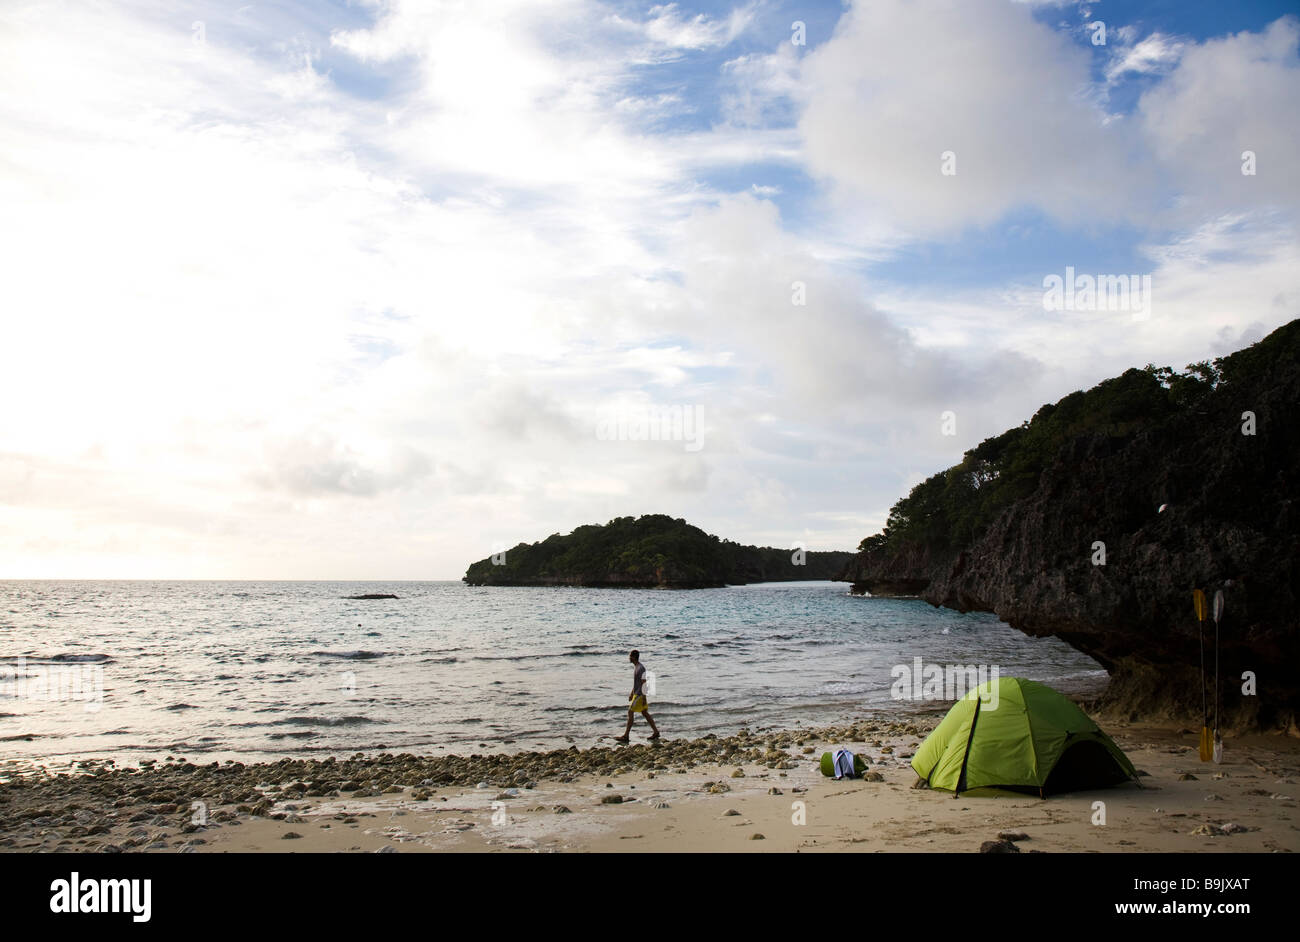 A man walks next to a green tent on an island in the Lau Group in Fiji, South Pacific. Stock Photo